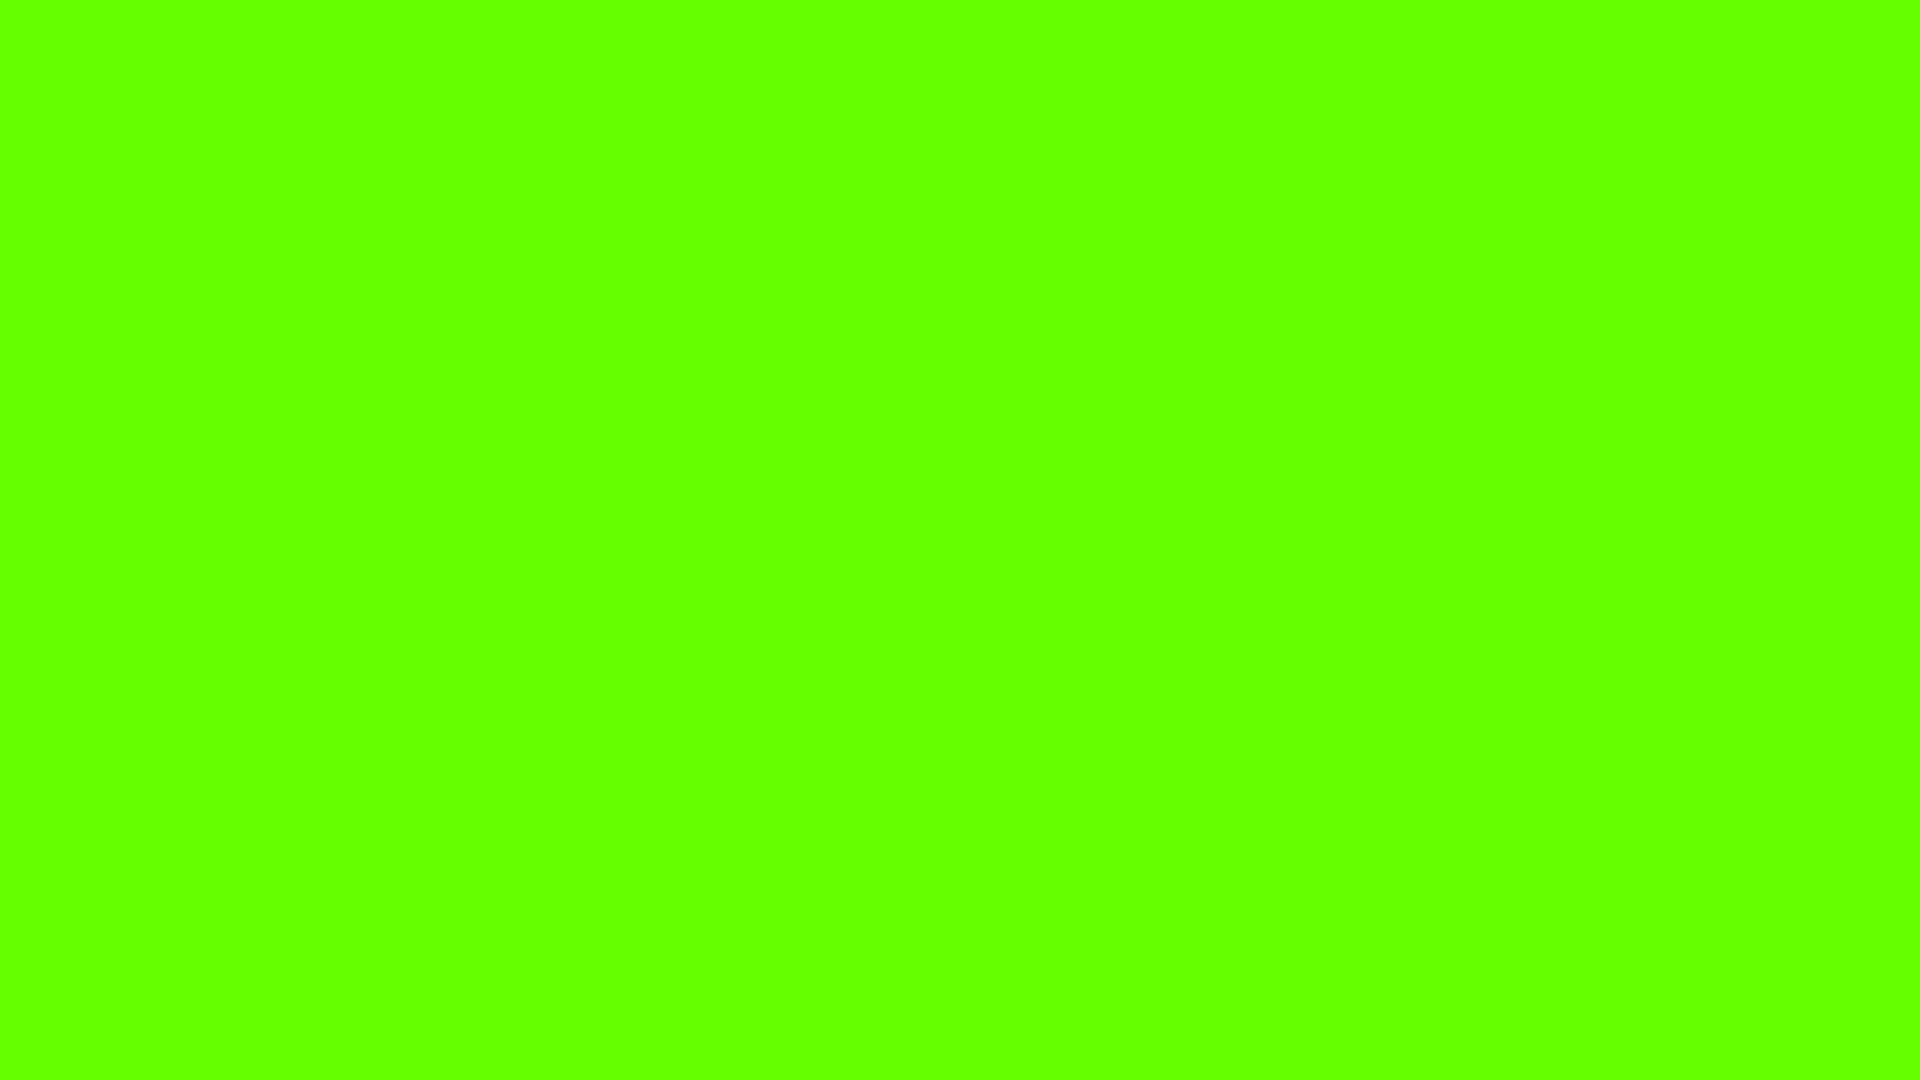 1920x1080 Solid Bright Green Background  bright green solid